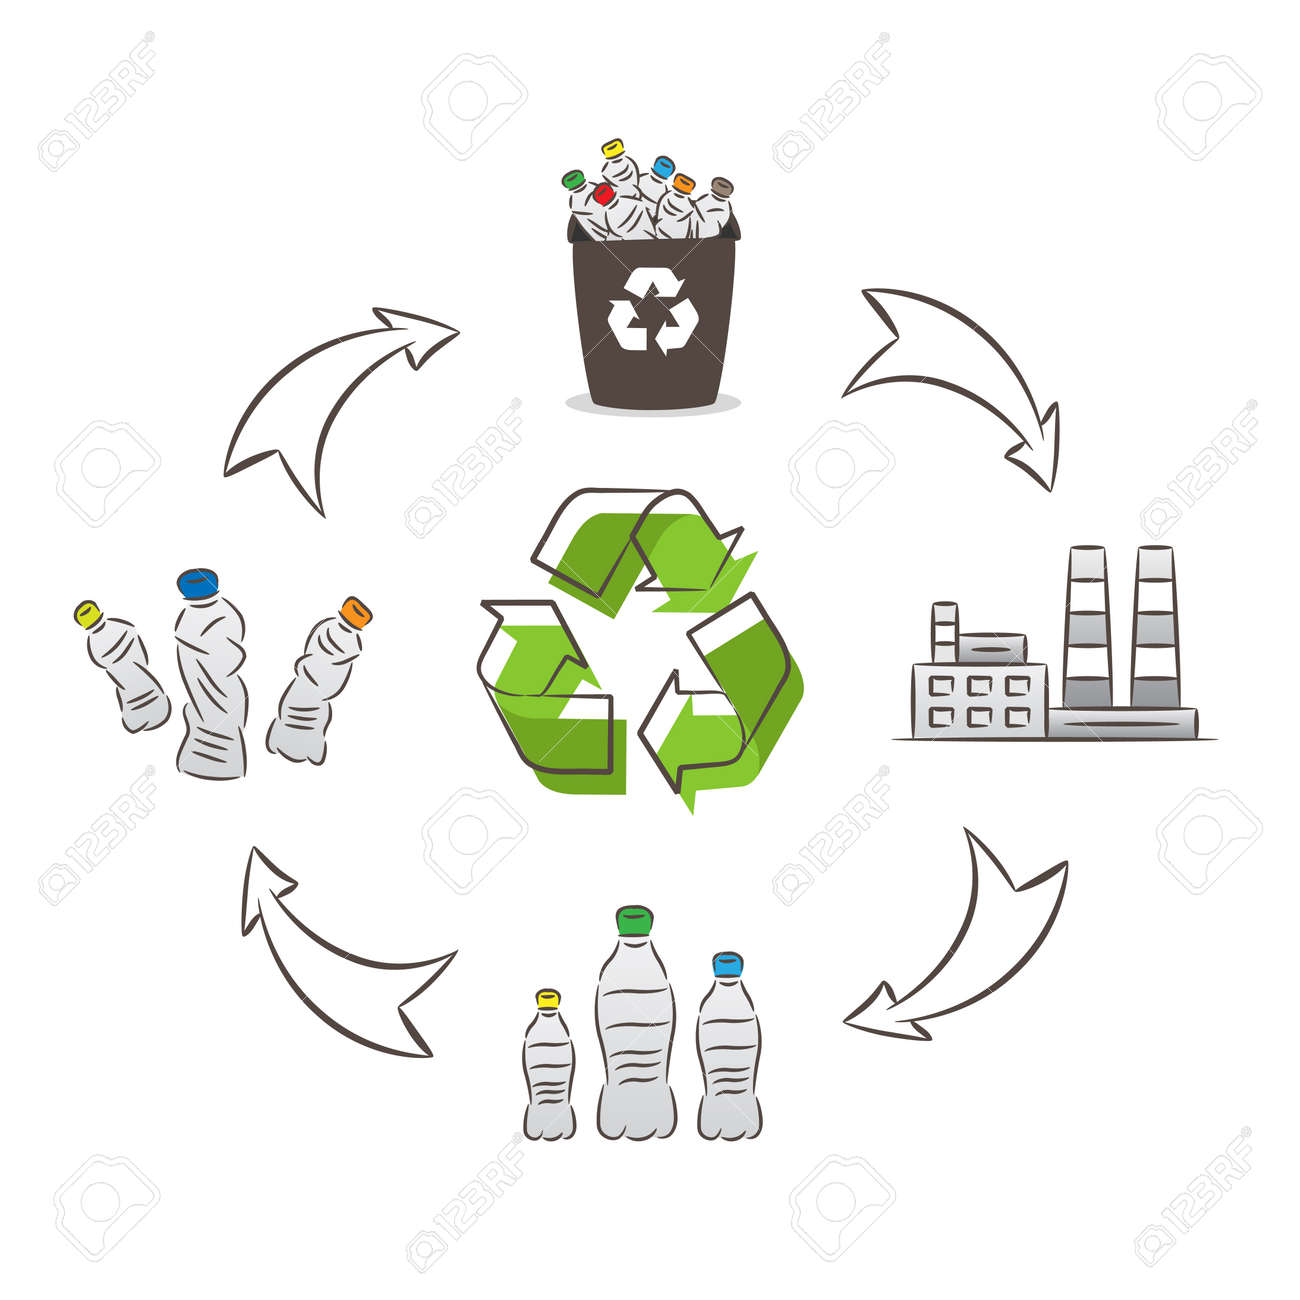 Plastic bottle recycling process vector illustration  Plastic